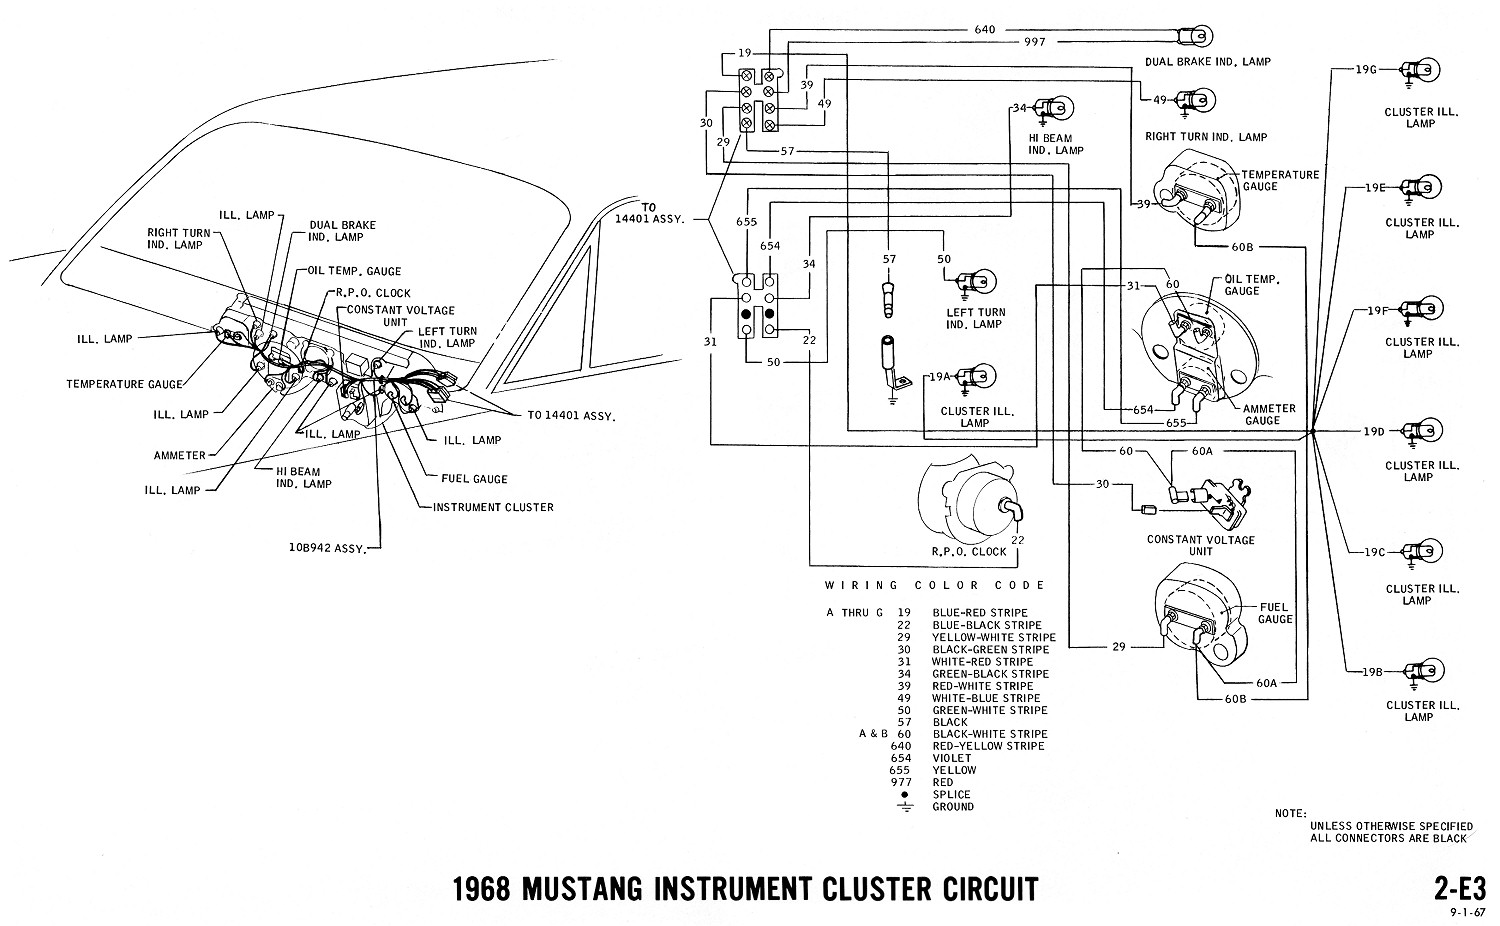 91 Bmw Fuse Box Wiring Diagram Will Be A Thing E46 1968 Mustang Diagrams Evolving Software